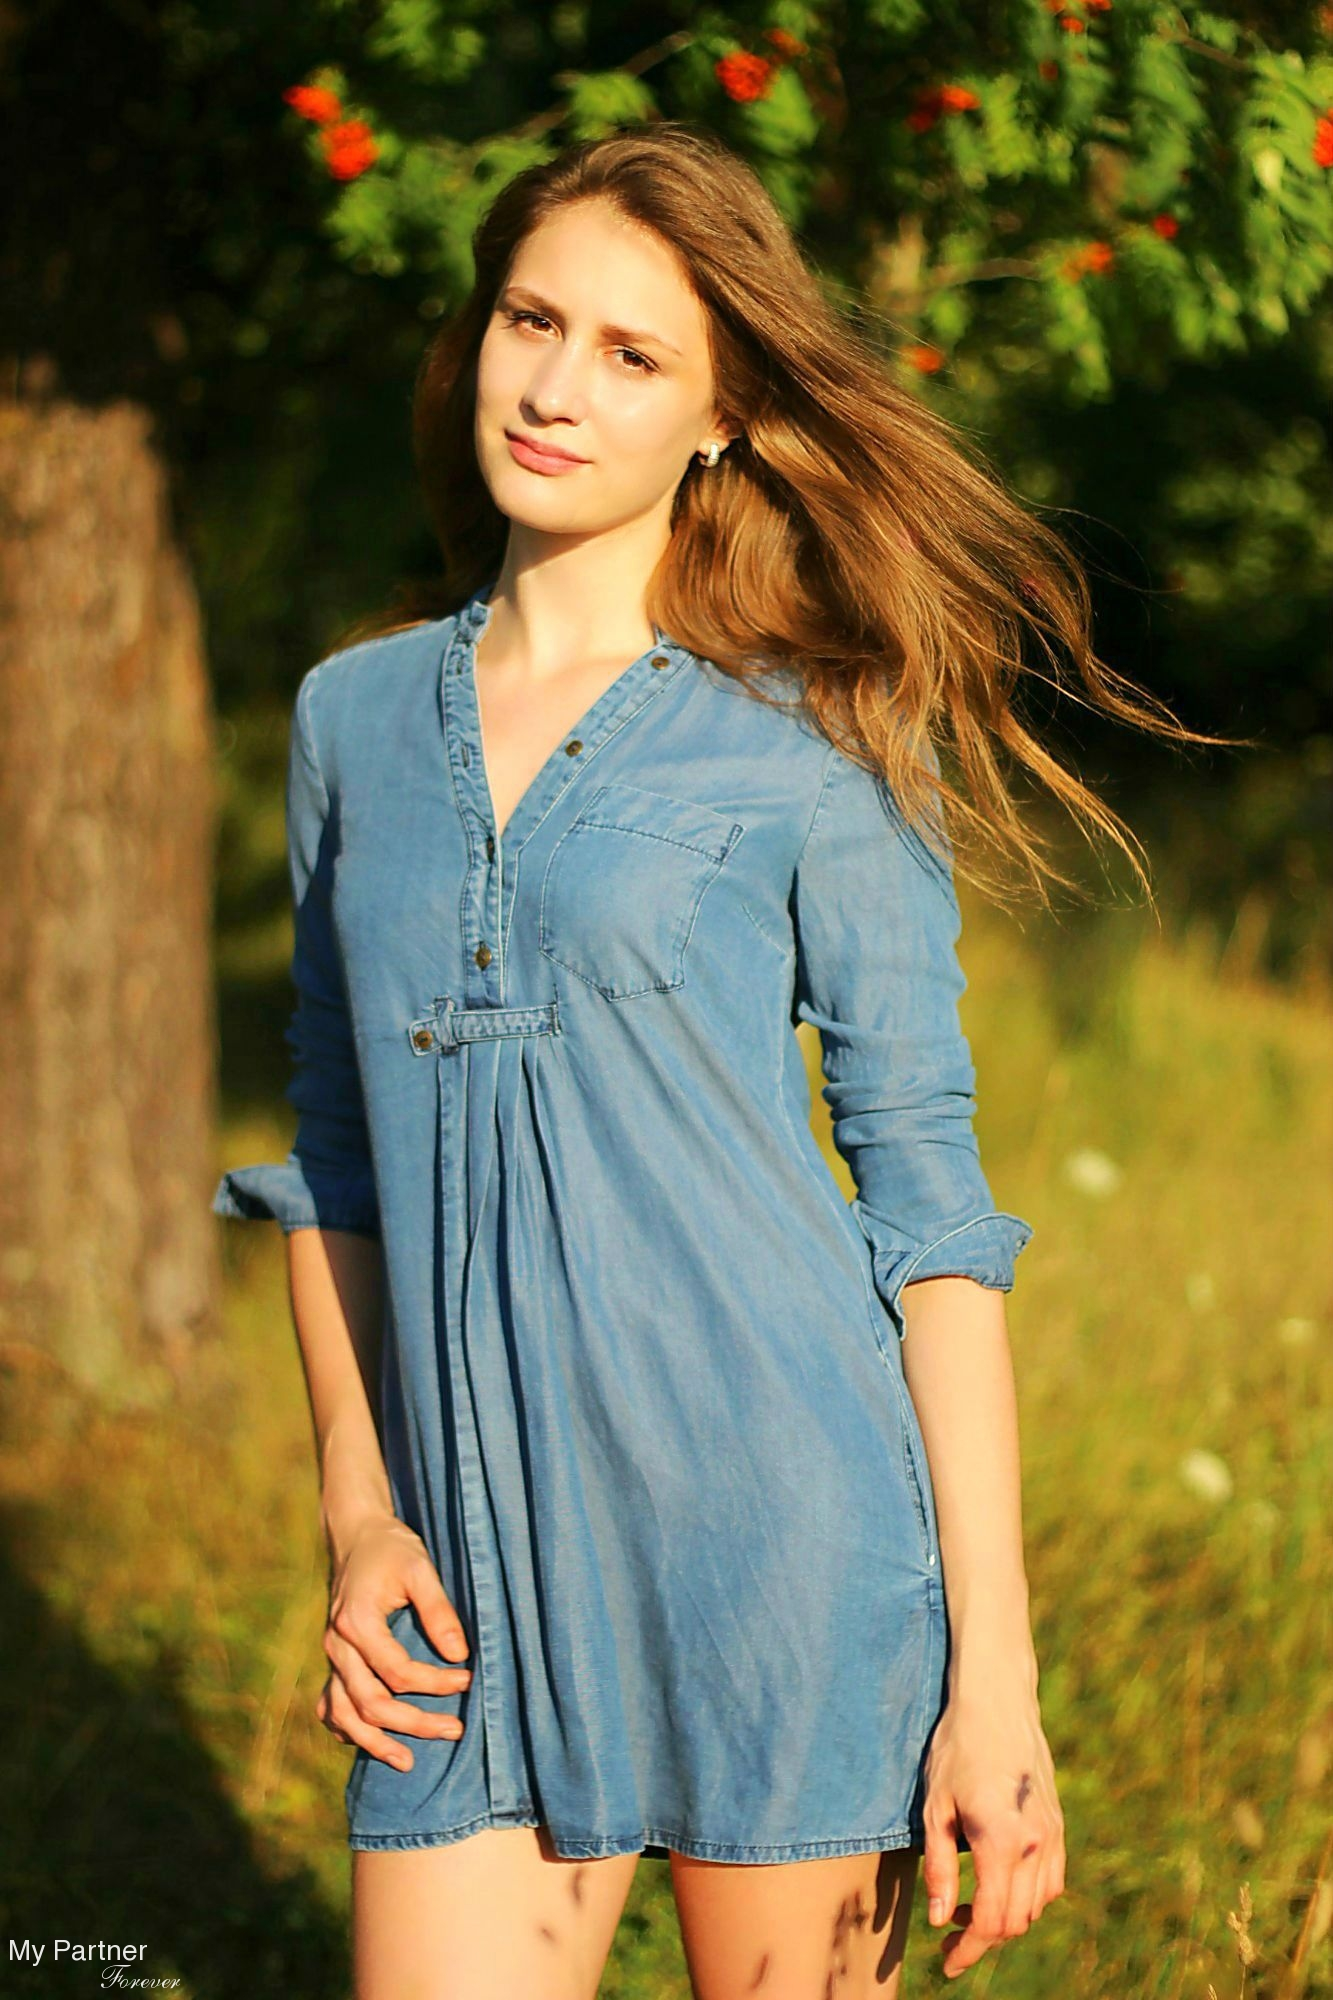 Beautiful Girl from Belarus - Elena from Grodno, Belarus